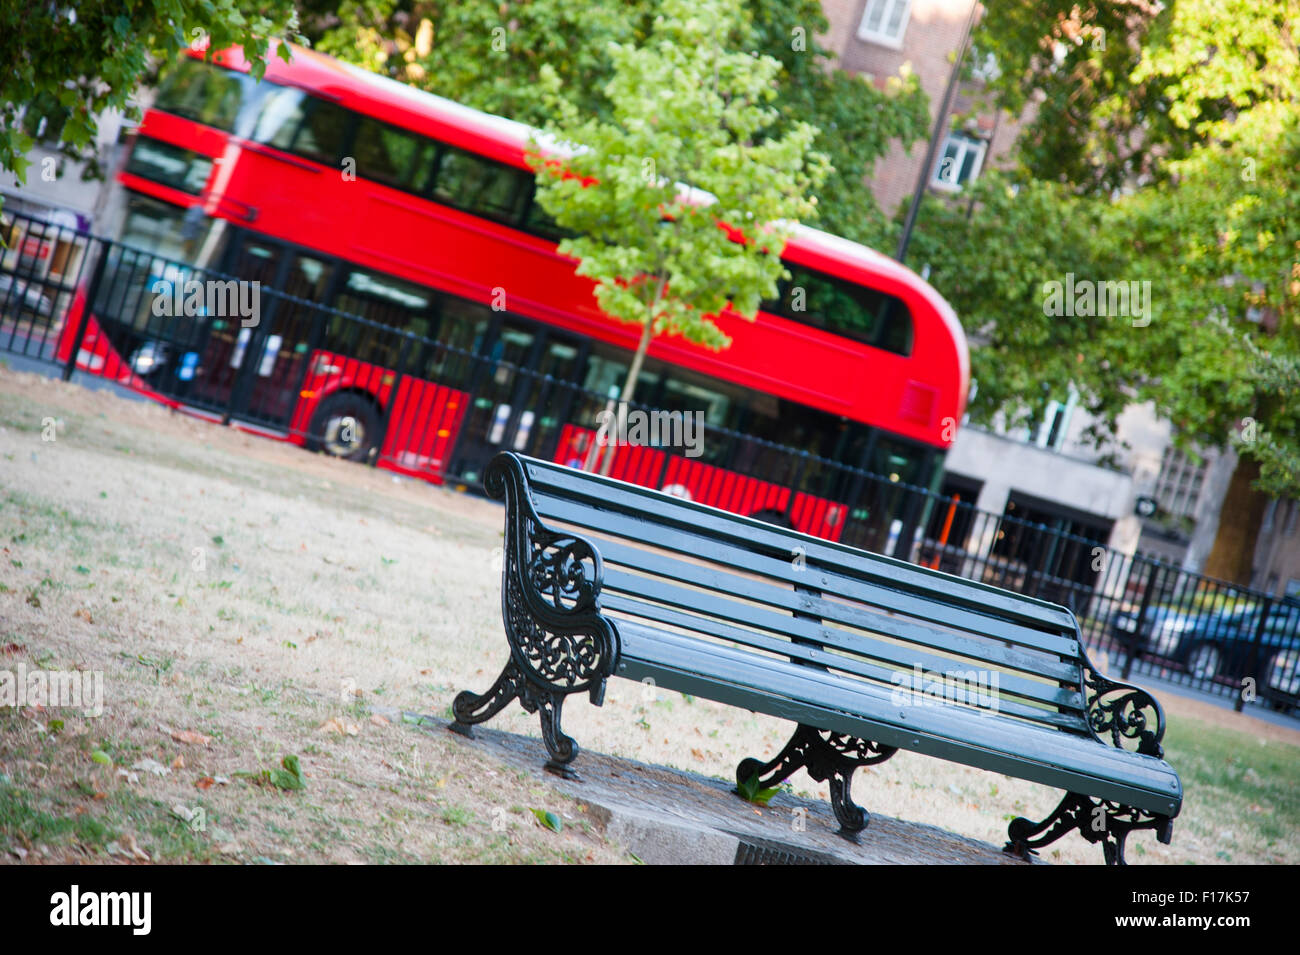 A red double decker bus drives past a park bench in London city - Stock Image